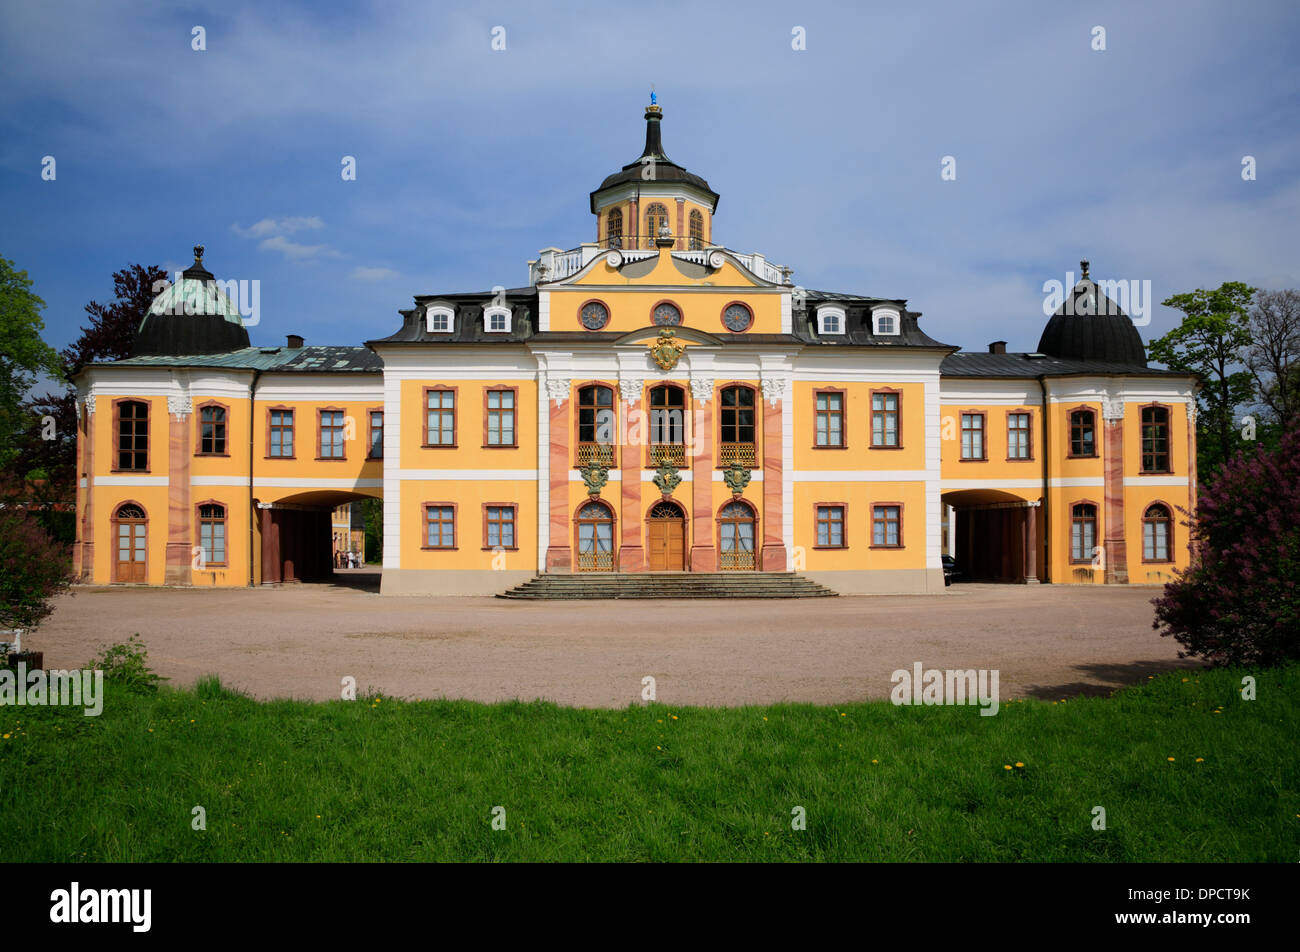 Belvedere Castle, Weimar, Thuringia, Germany, Europe - Stock Image